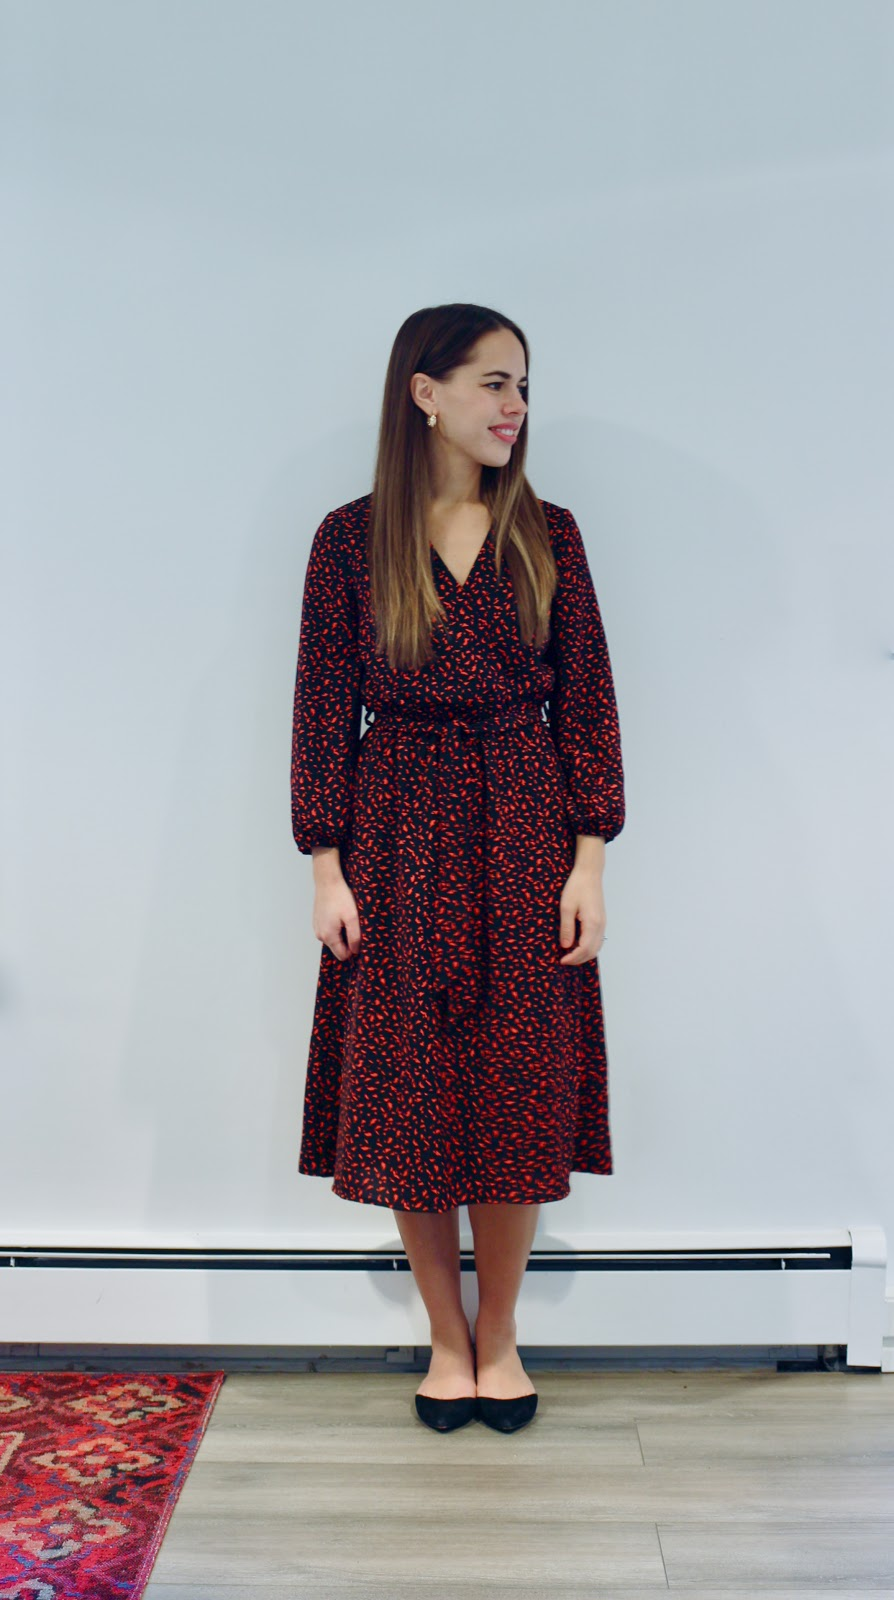 Jules in Flats - Midi Wrap Dress (Business Casual Fall Workwear on a Budget)